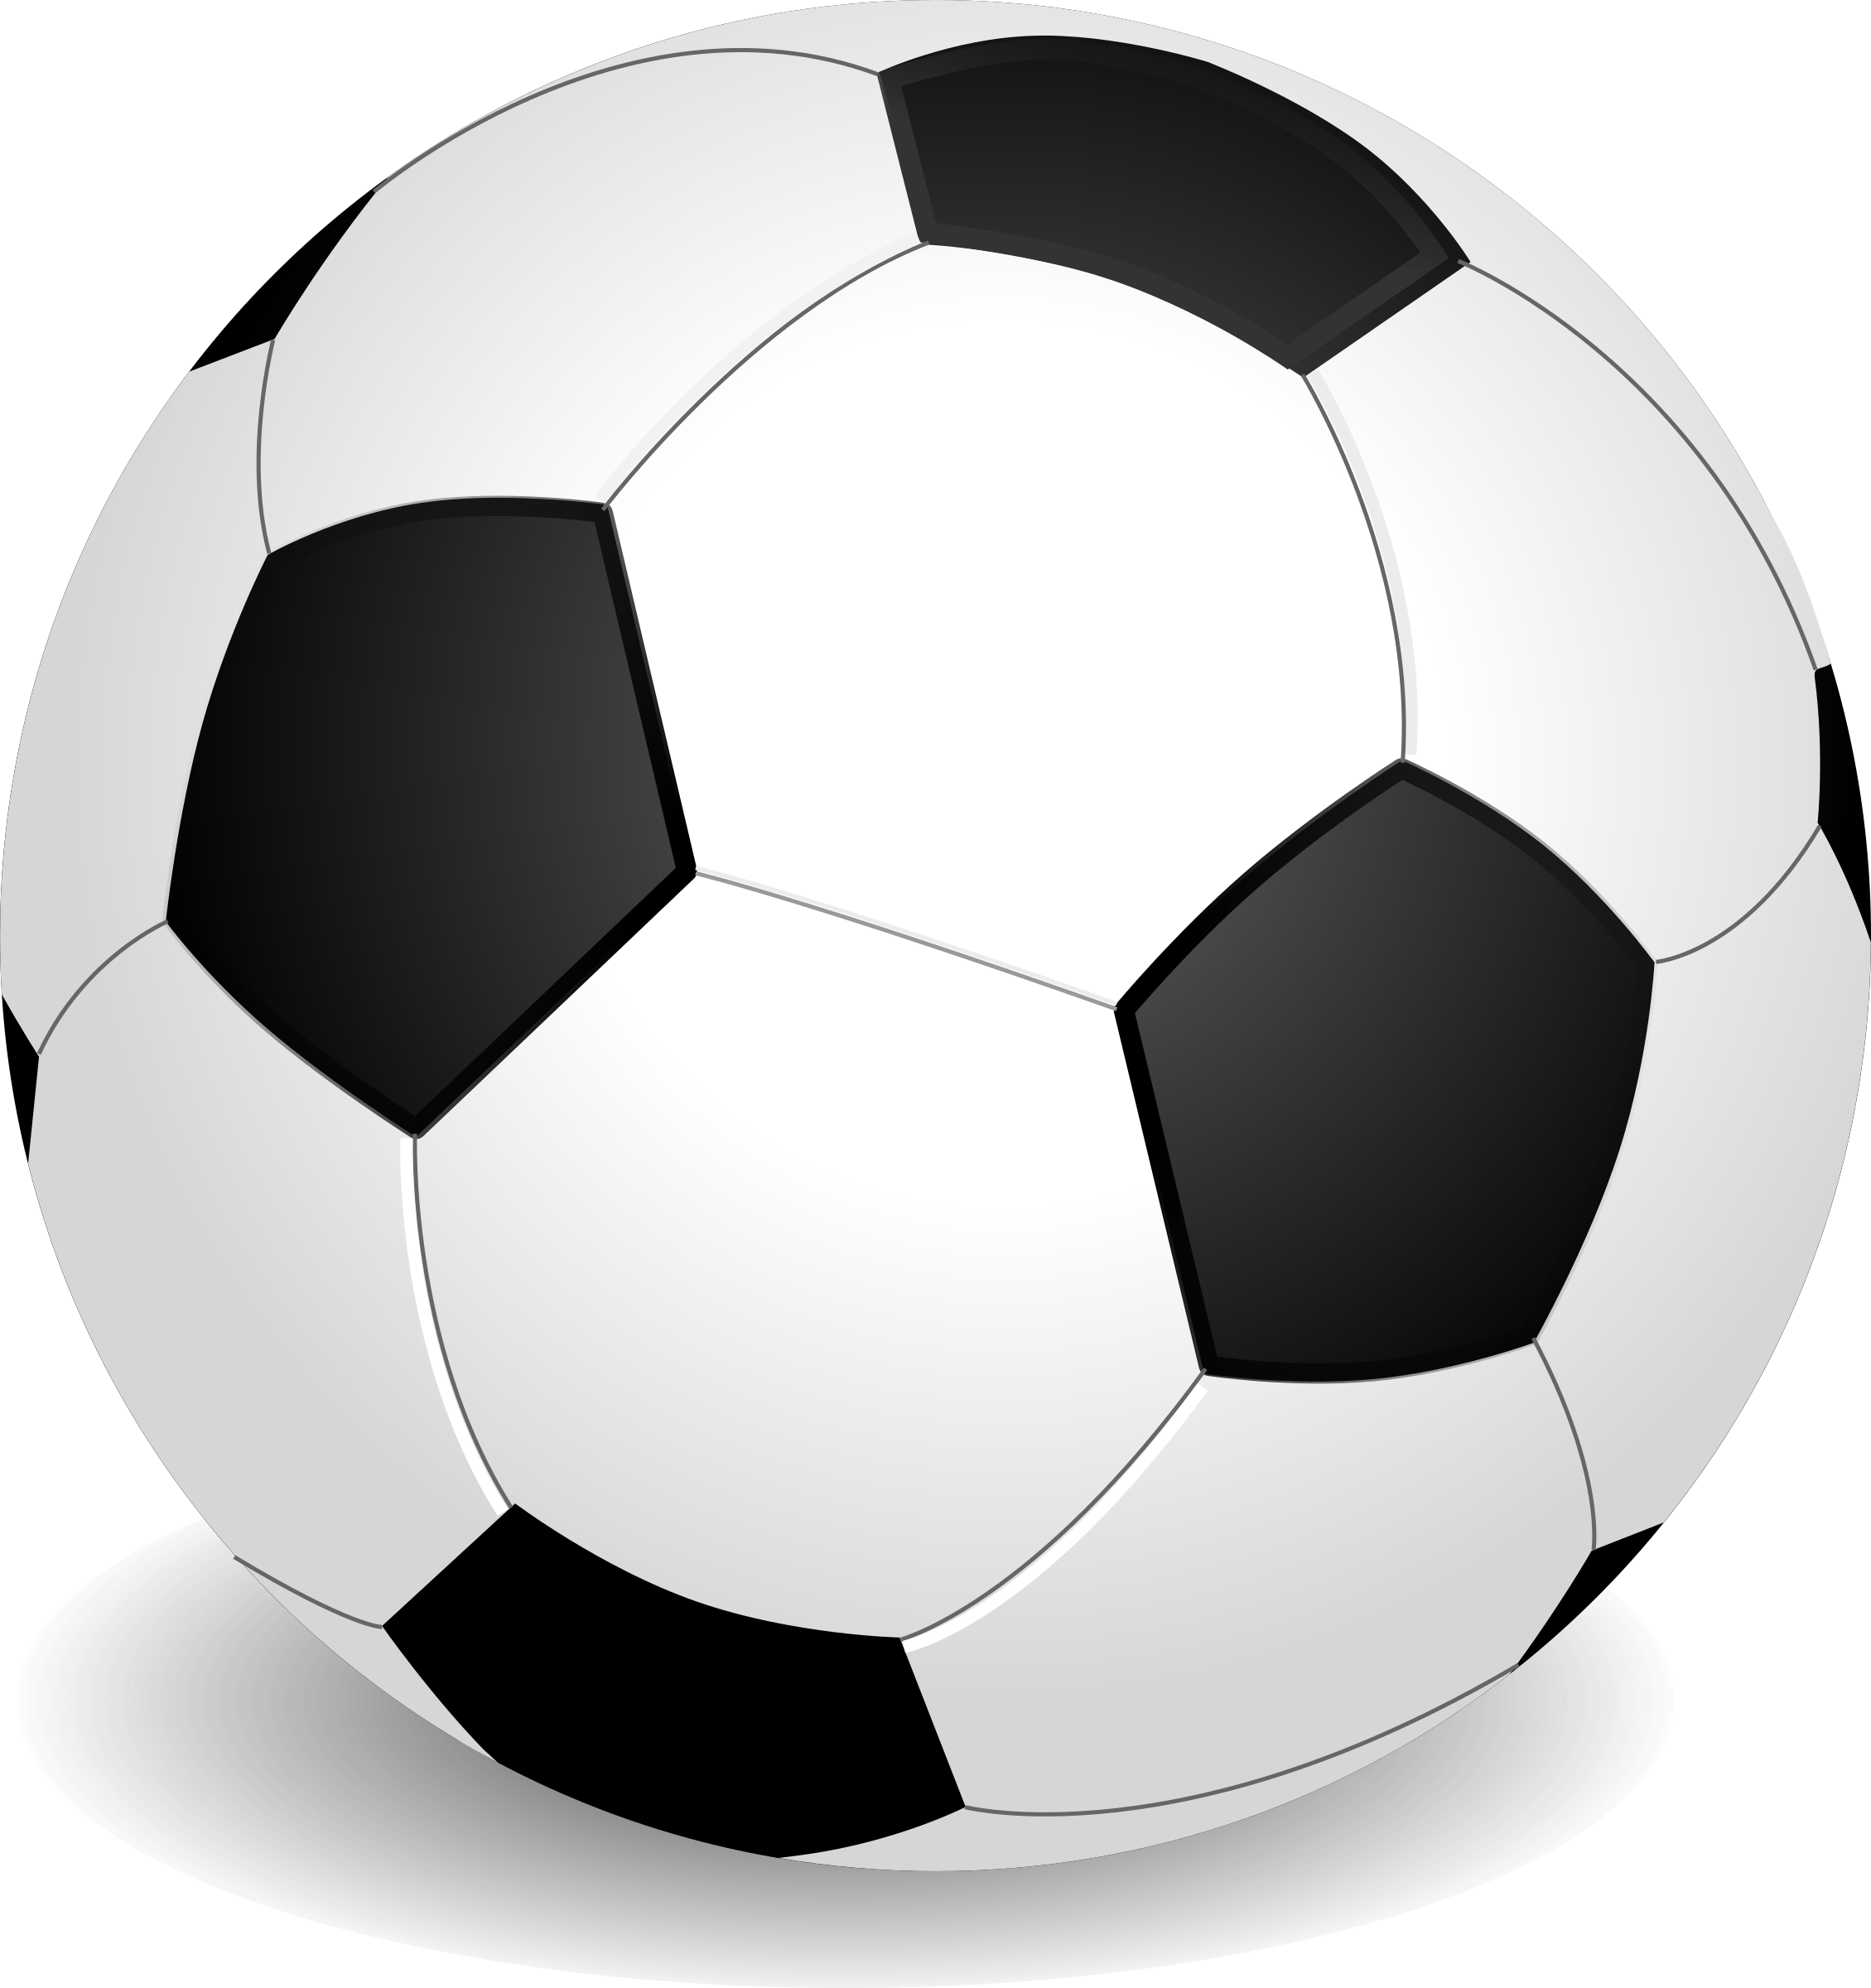 Football clipart png. Soccer big image